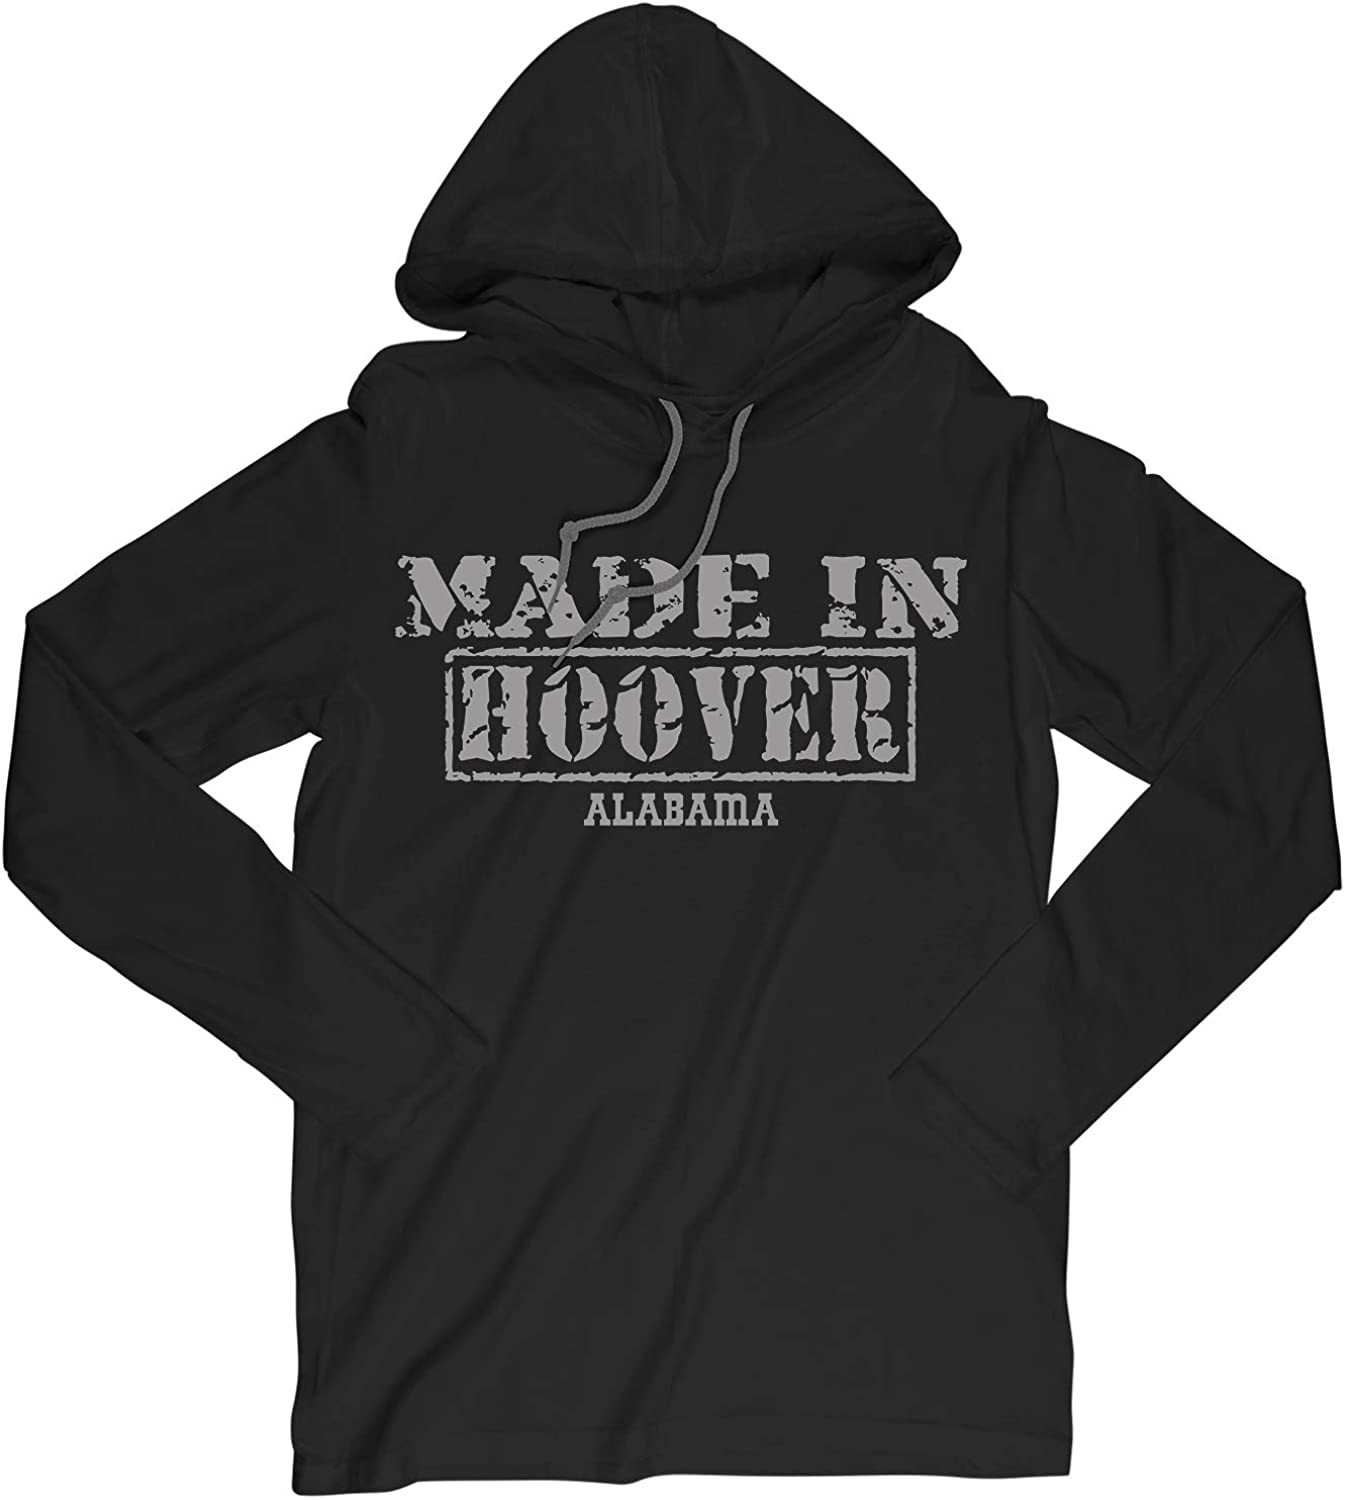 Retro Vintage Style Made in Alabama, Hoover Hometown Long Sleeve Hooded T-Shirt